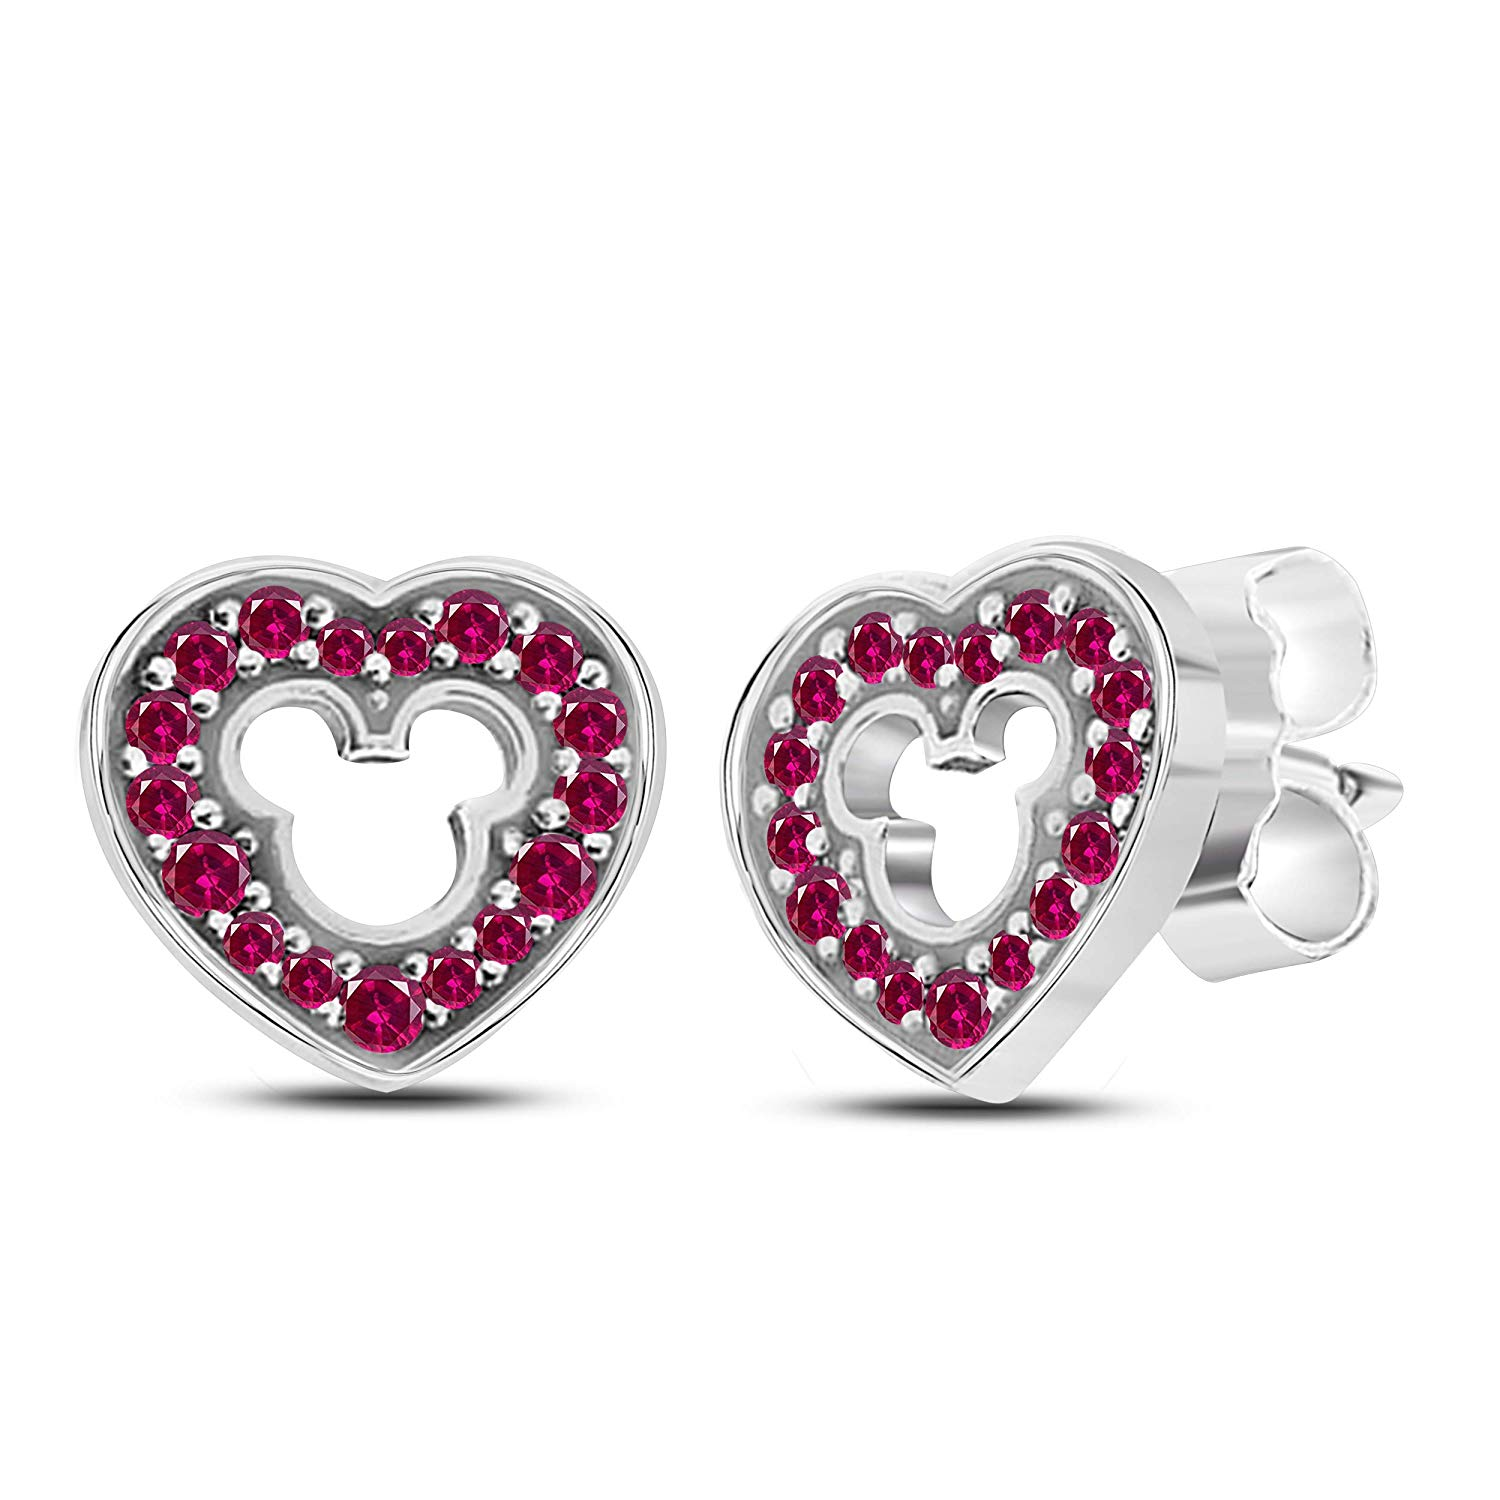 1e4b0e0cf Get Quotations · Love Heart Micky Mouse 925 Sterling Silver Stud Earrings  with Fashion Red Ruby Cubic Zirconia Studs